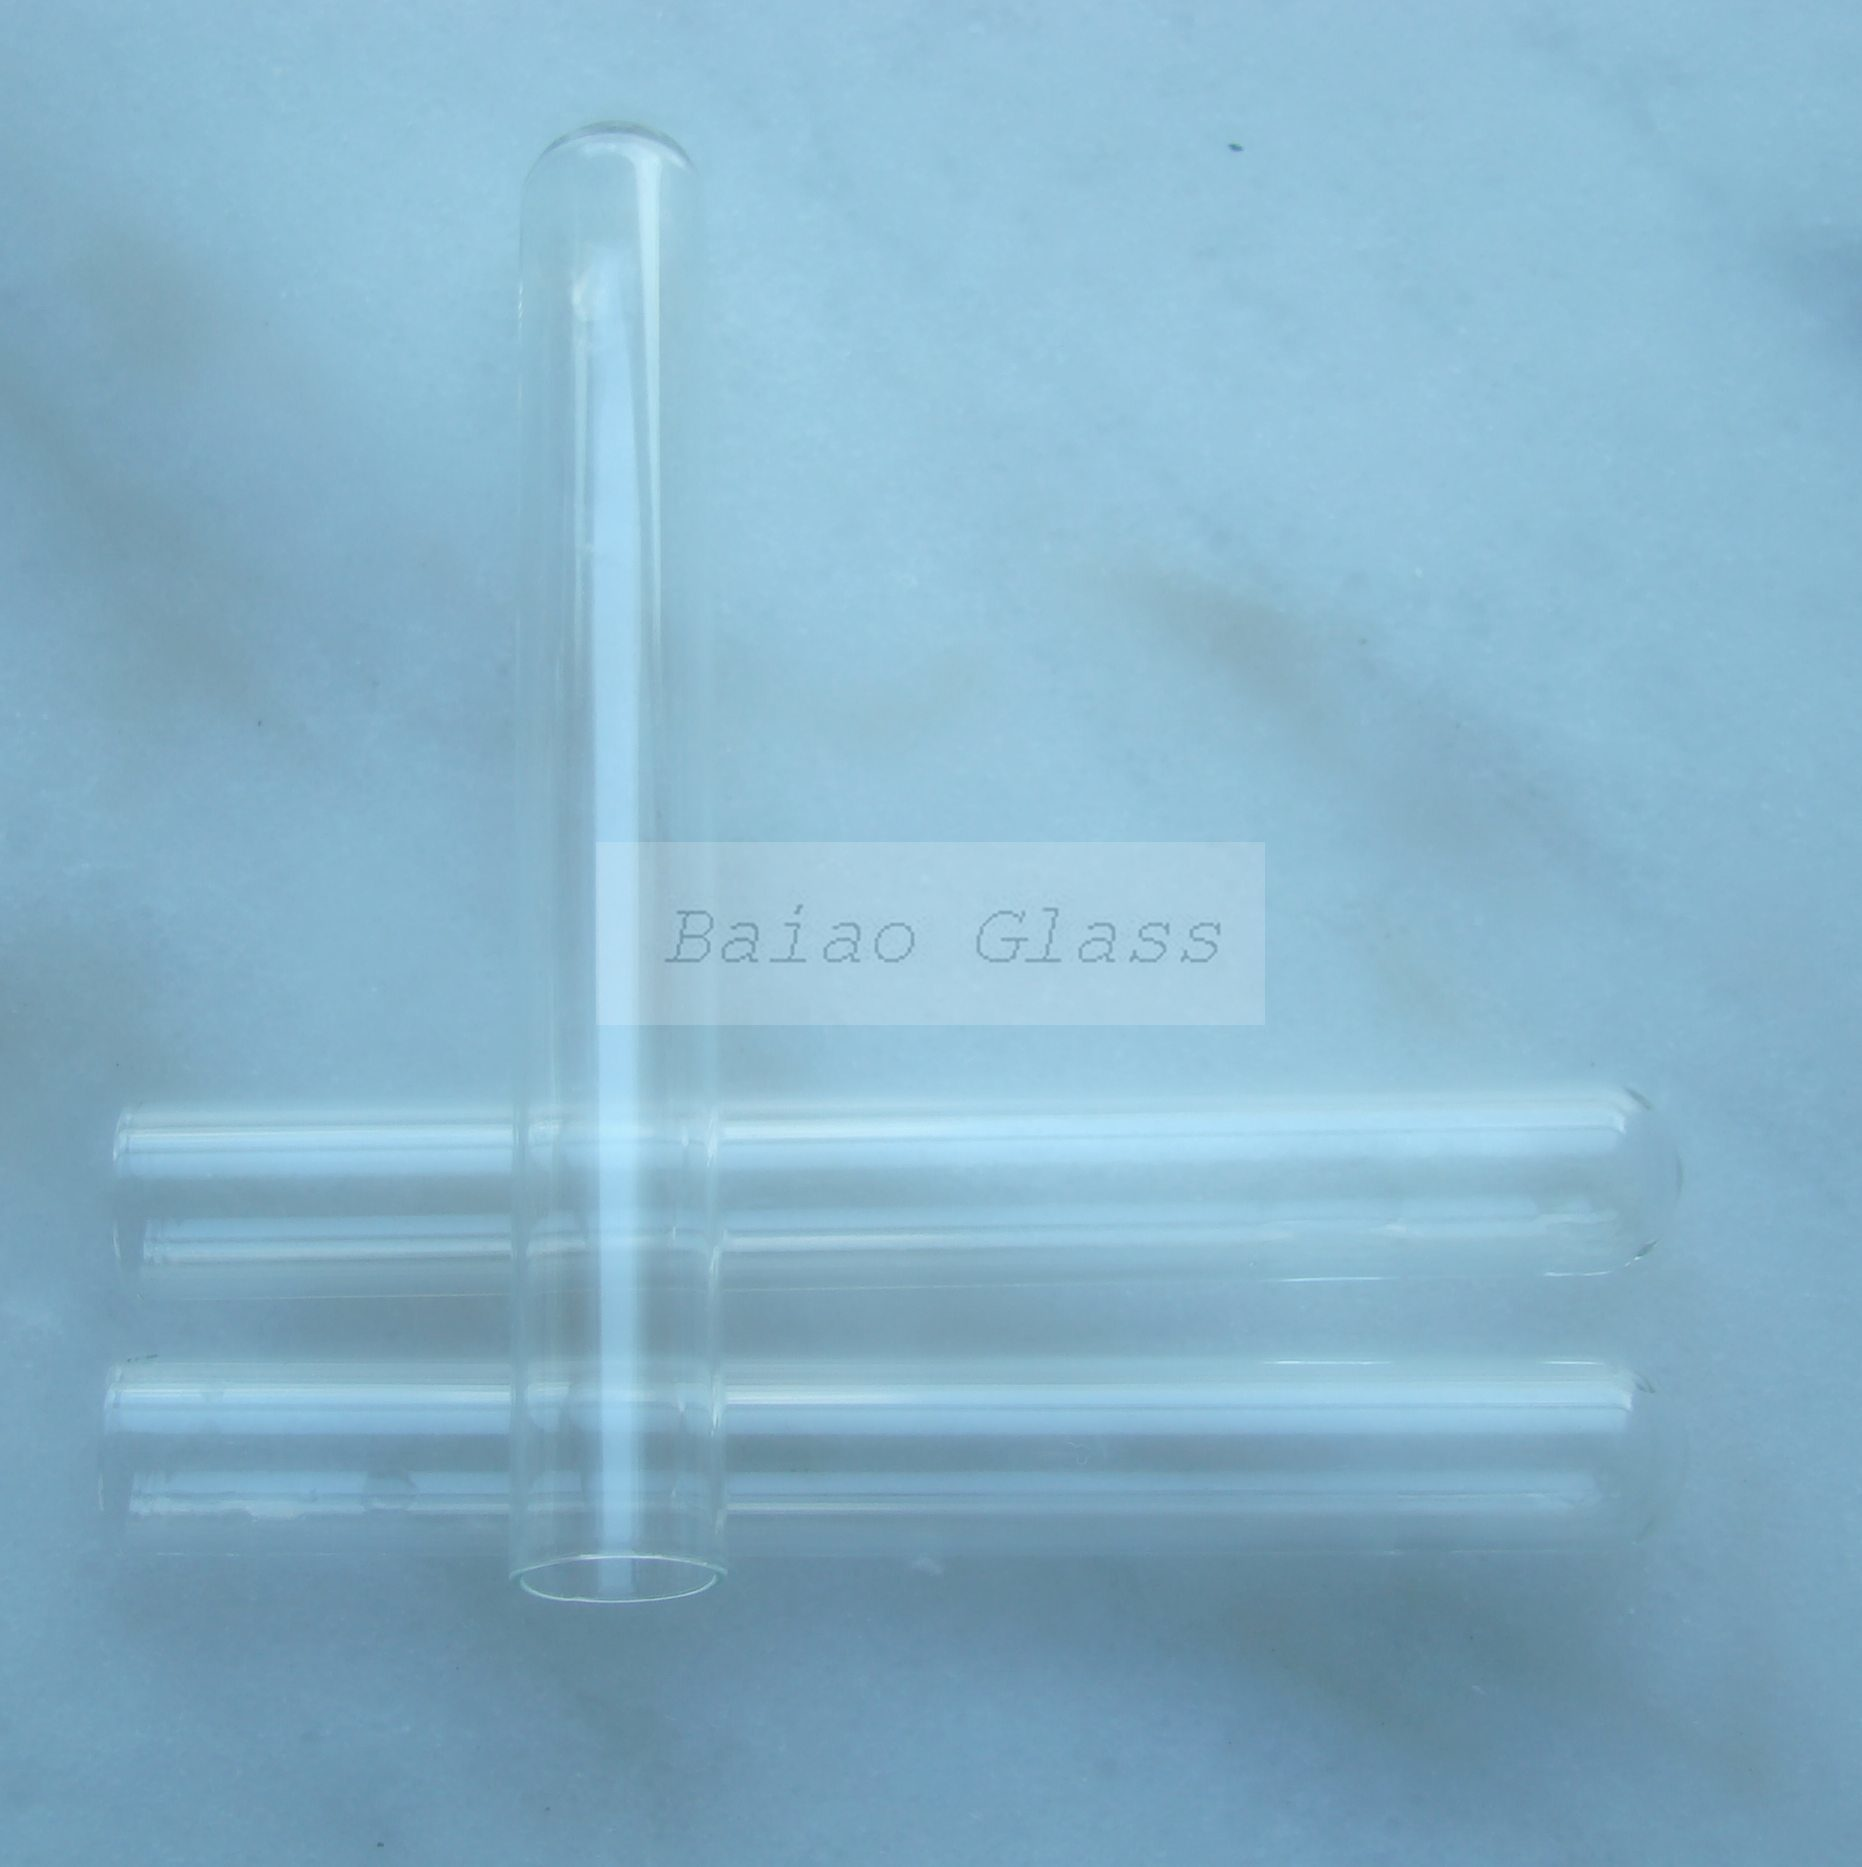 China 13x100mm glass test tube china test tube glass for Glass test tubes for crafts